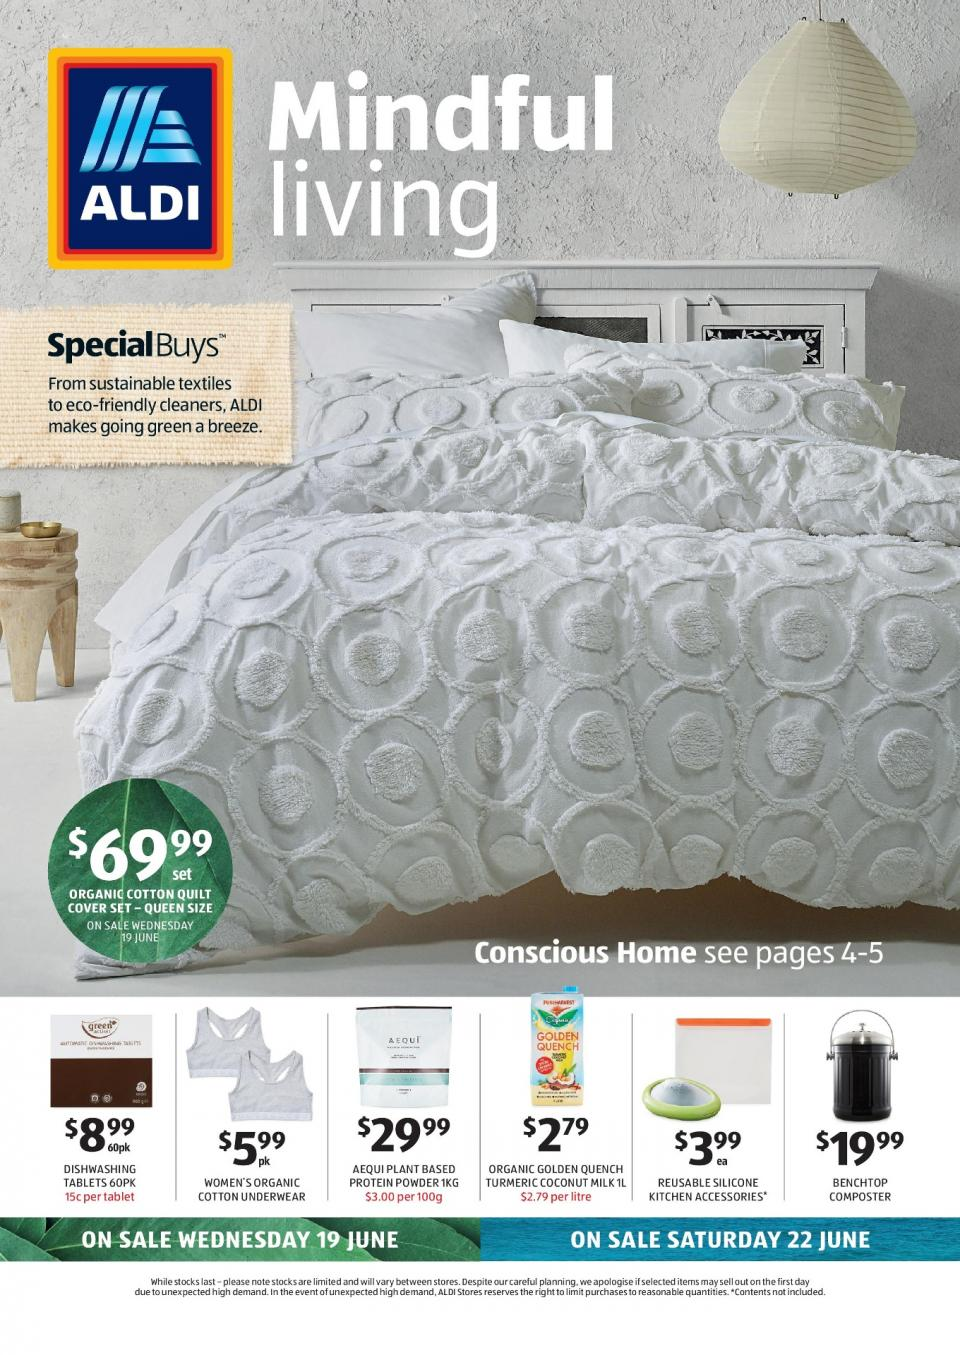 aldi catalogue special buys week 25 2019